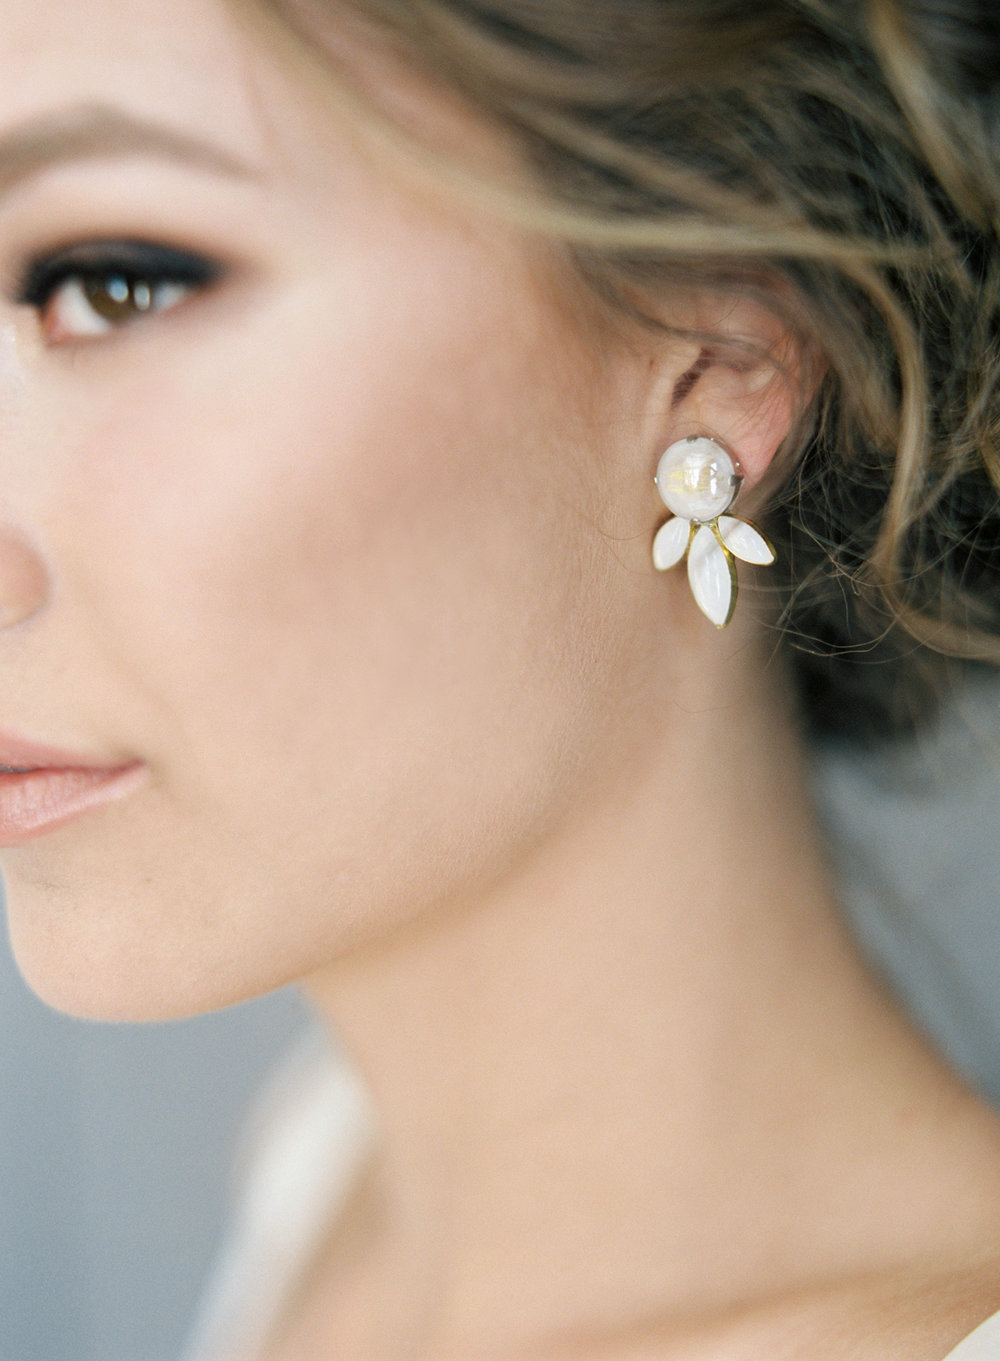 Hushed+Commotion,+Jen+Huang+2017,+Brooke+earrings+with+ivory+beading,+detail+2.jpg